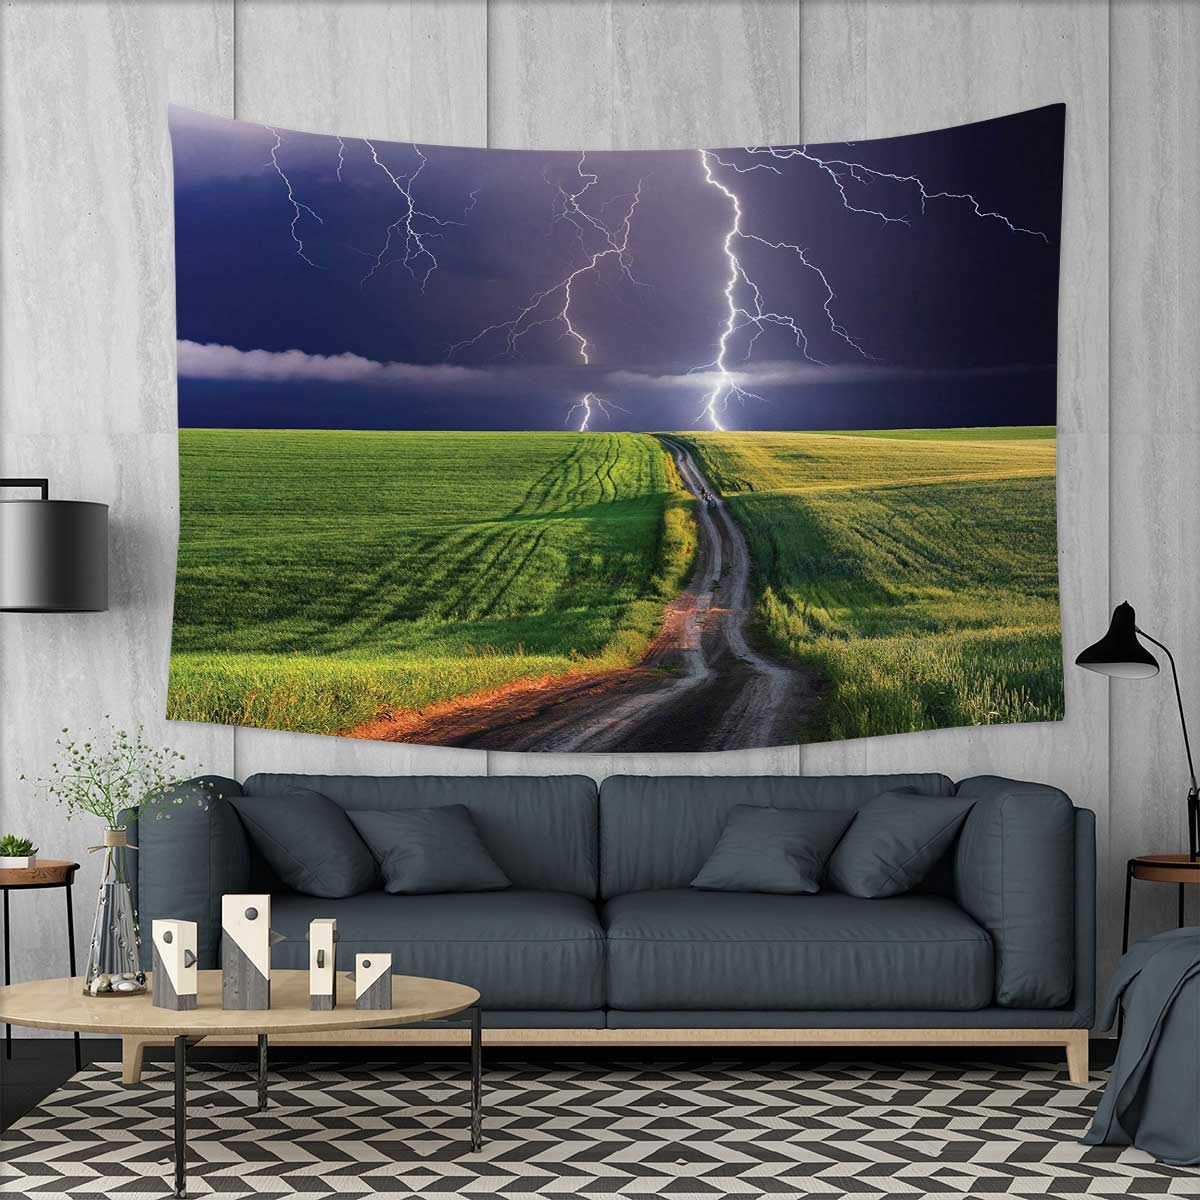 Anniutwo Nature Art Wall Decor Summer Storm About to Appear with Flash on The Field Solar Illumination Energy Theme Tapestry Wall Tapestry W60 x L51 (inch) Green Blue